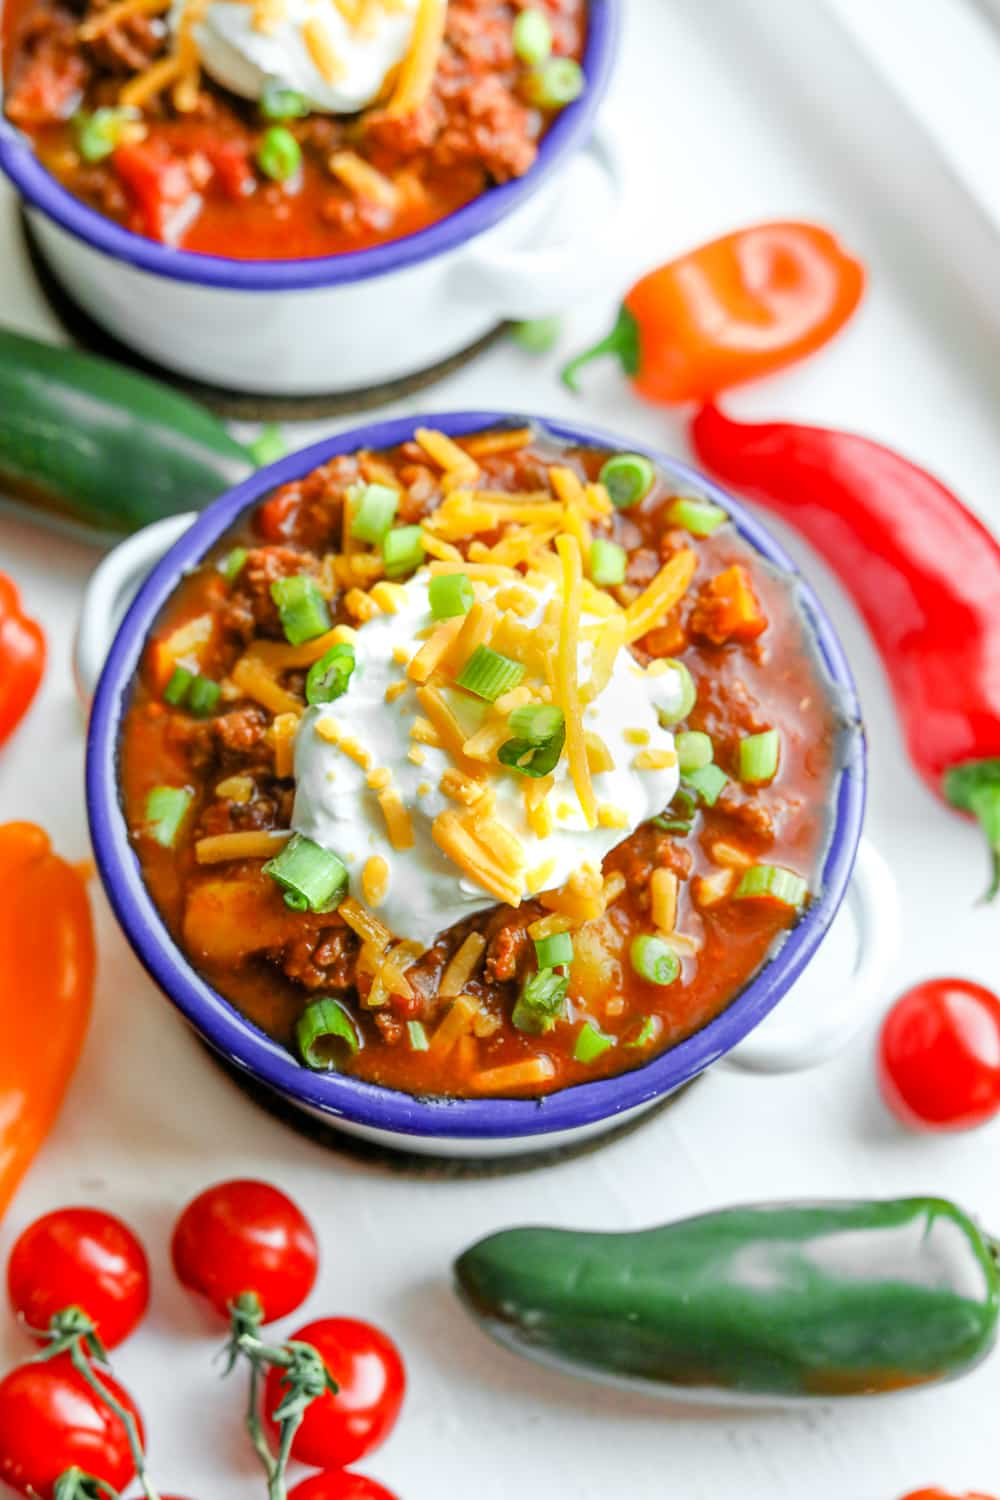 Low carb chili in a bowl topped with sour cream, cheese, and chives.